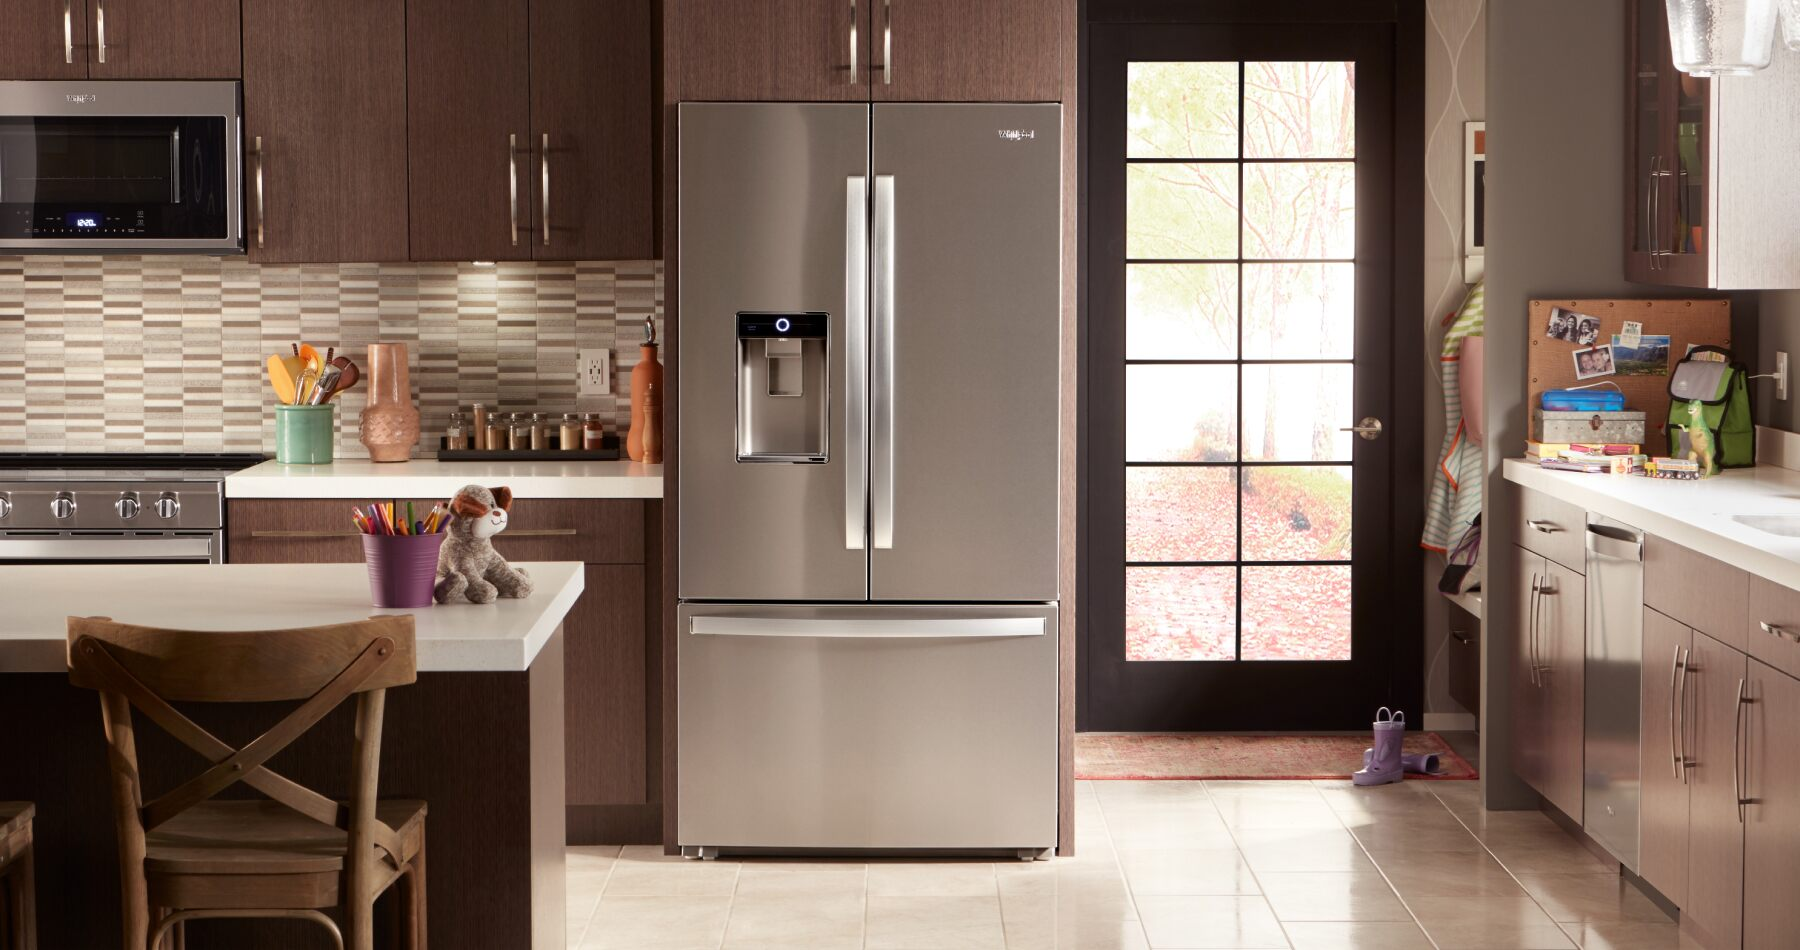 hight resolution of multiple kitchen appliances are shown in a well appointed kitchen